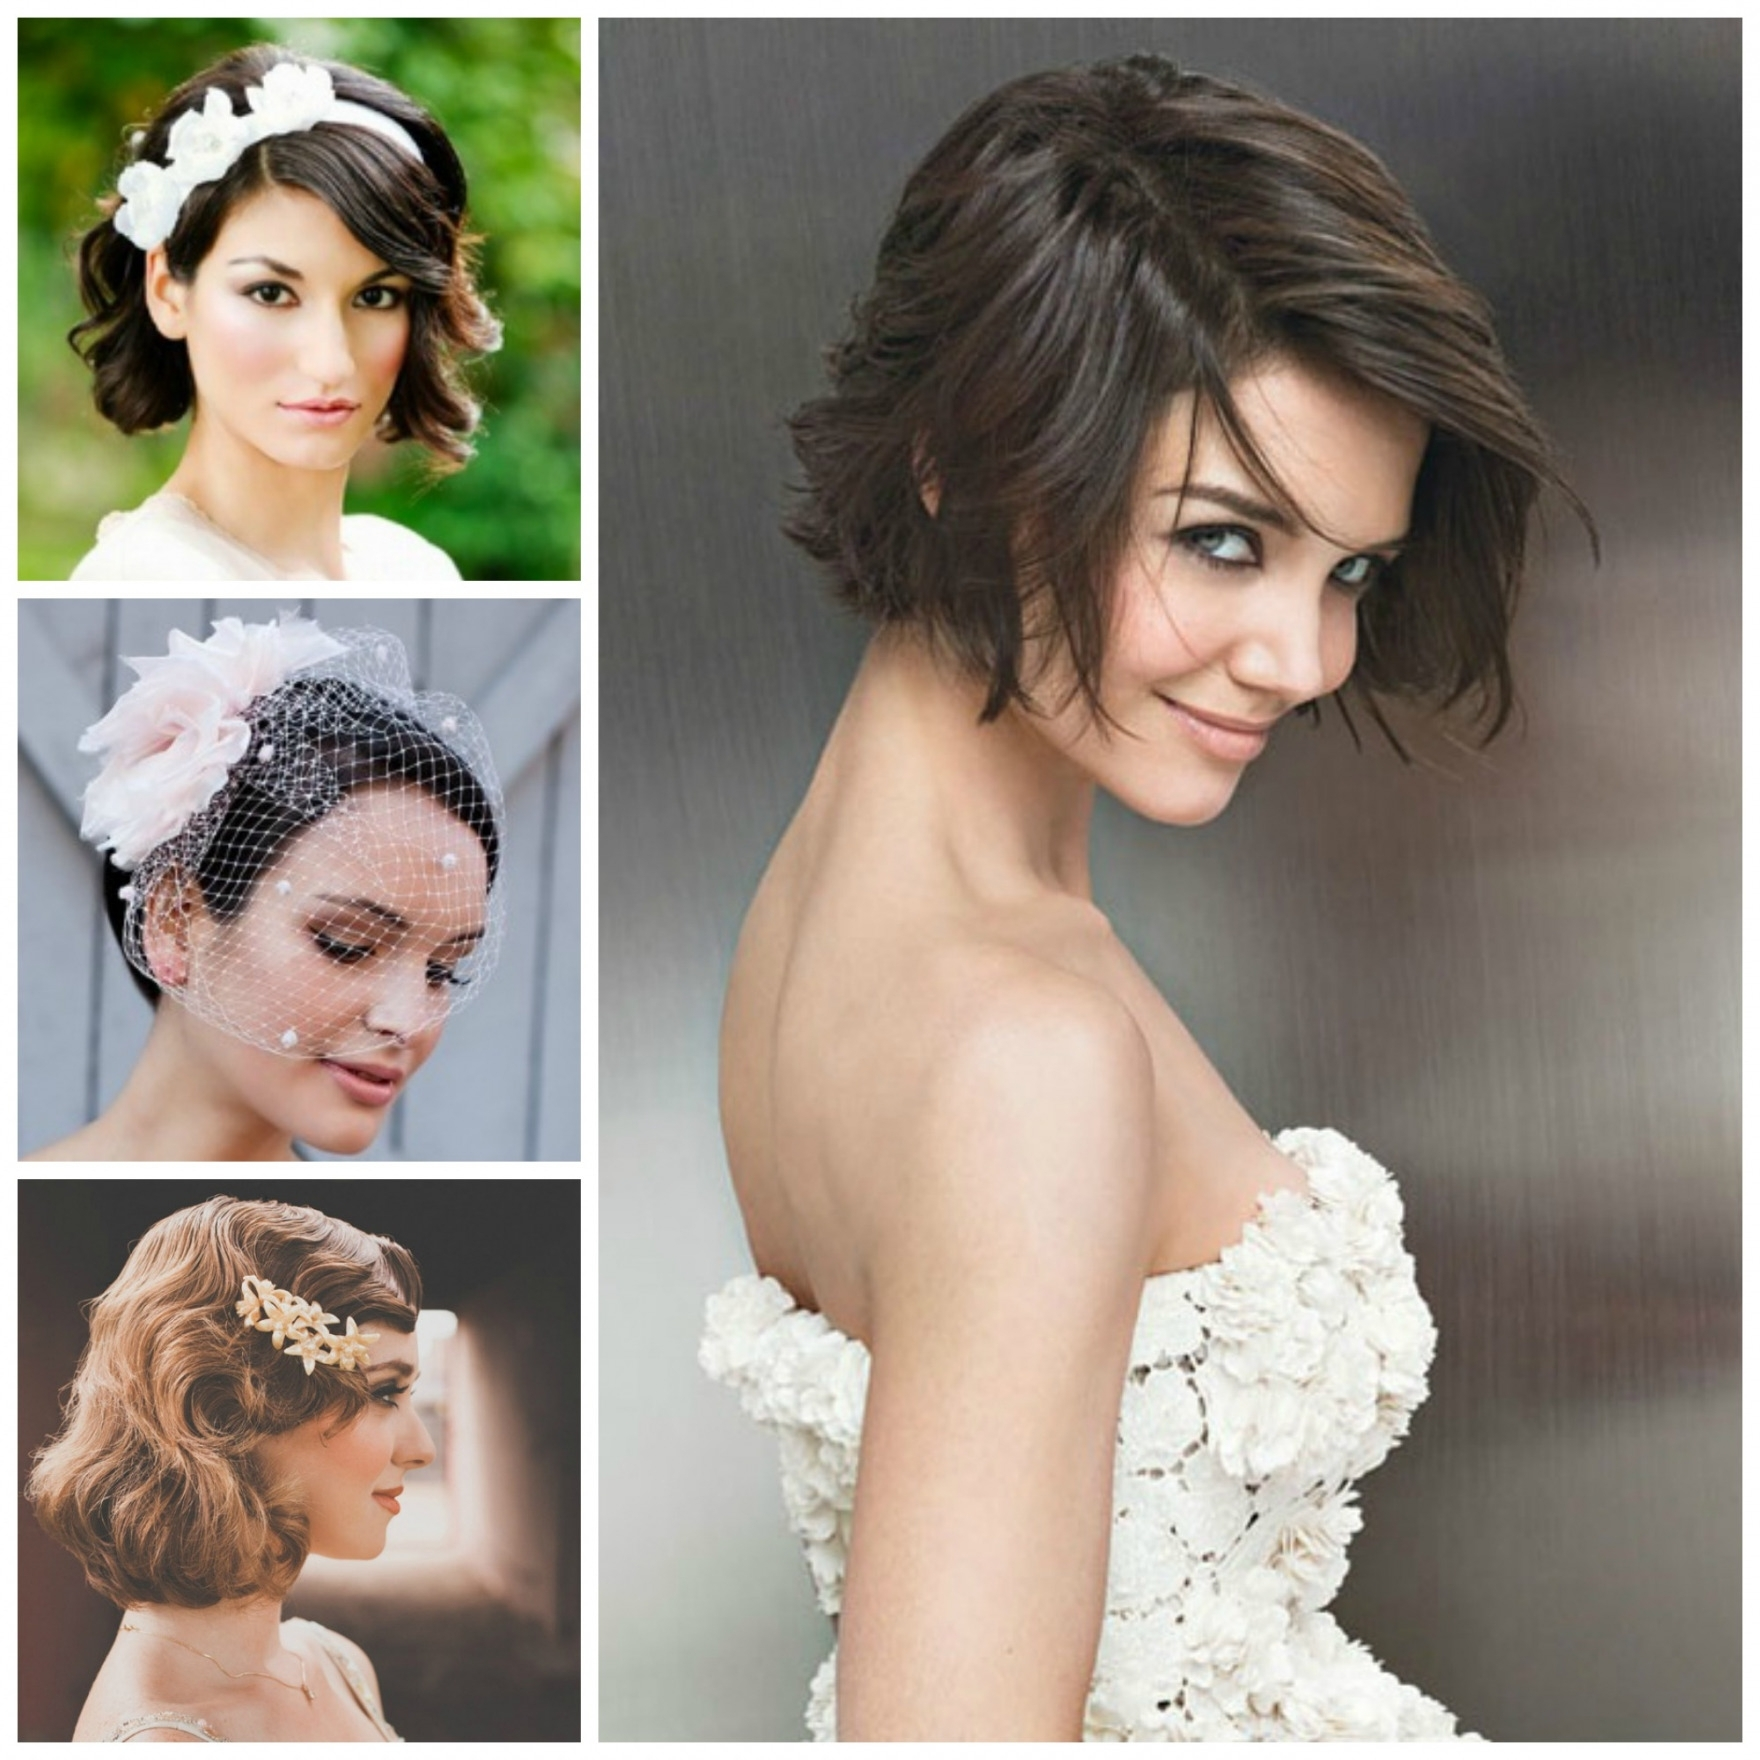 Well Known Short Wedding Hairstyles For Bridesmaids Inside Short Wedding Hairstyles Look Pretty With Bridal Ideas Bridesmaid (View 6 of 15)